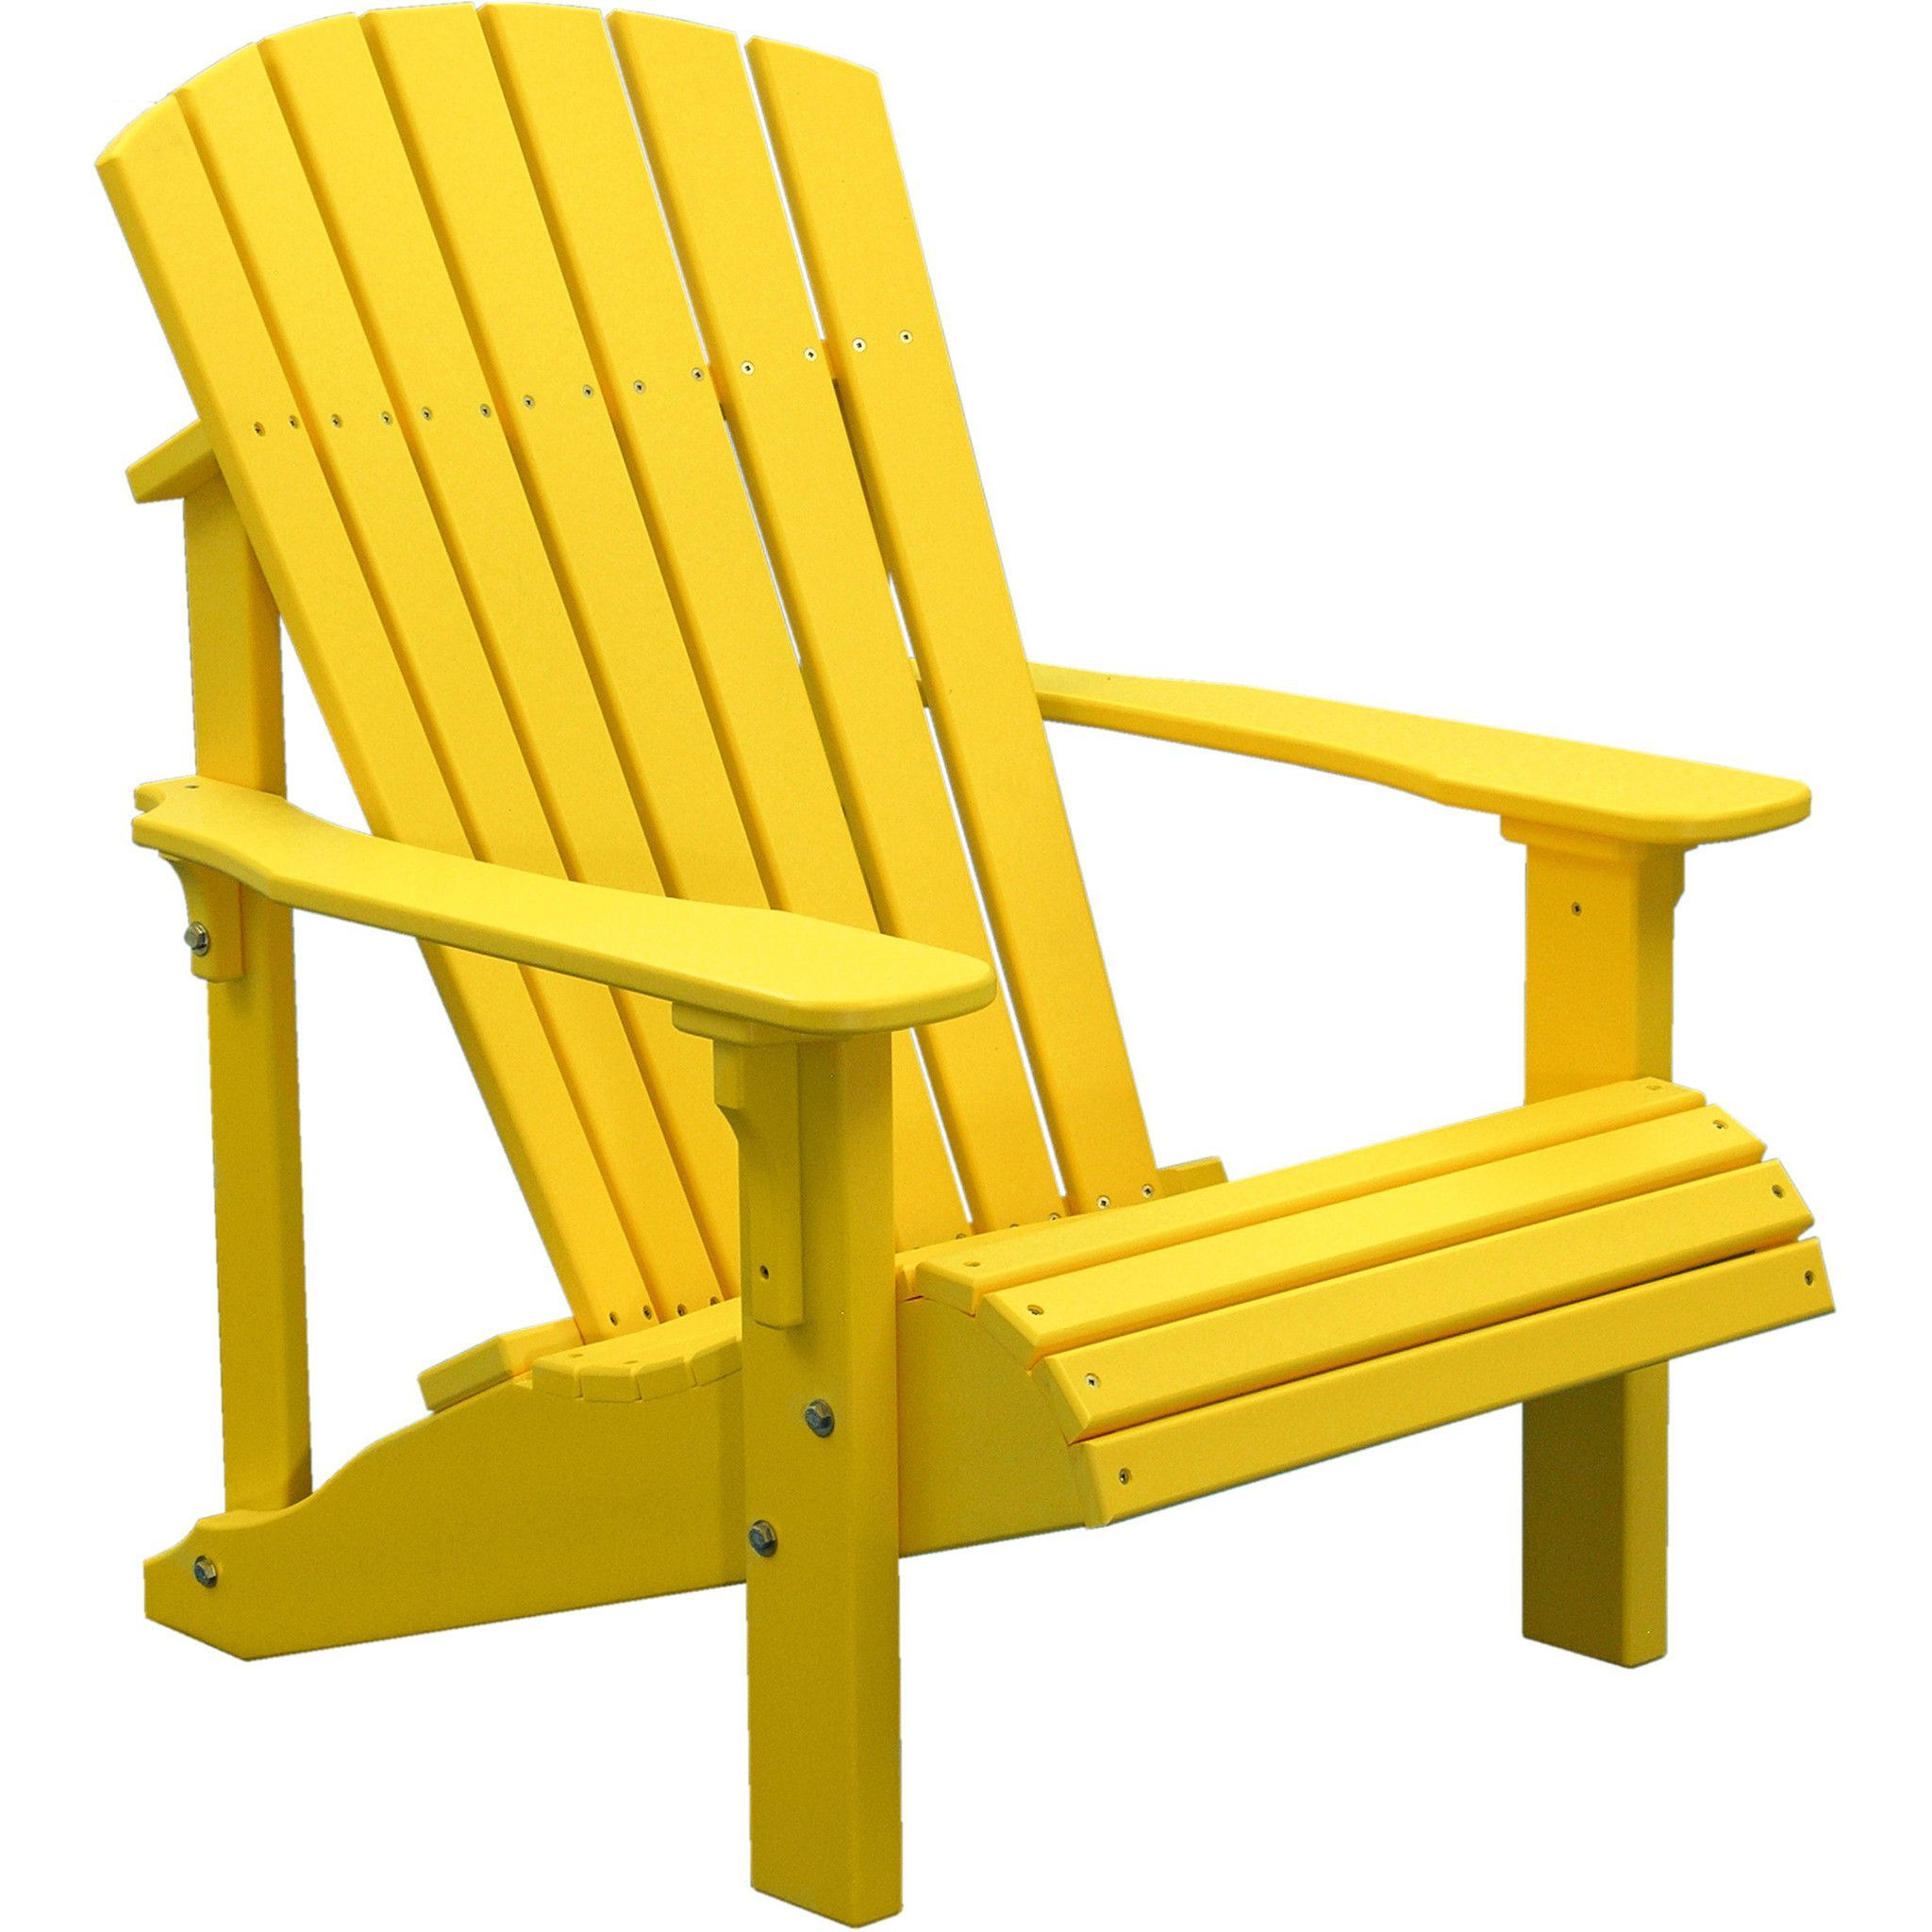 LuxCraft Deluxe Recycled Plastic Adirondack Chair